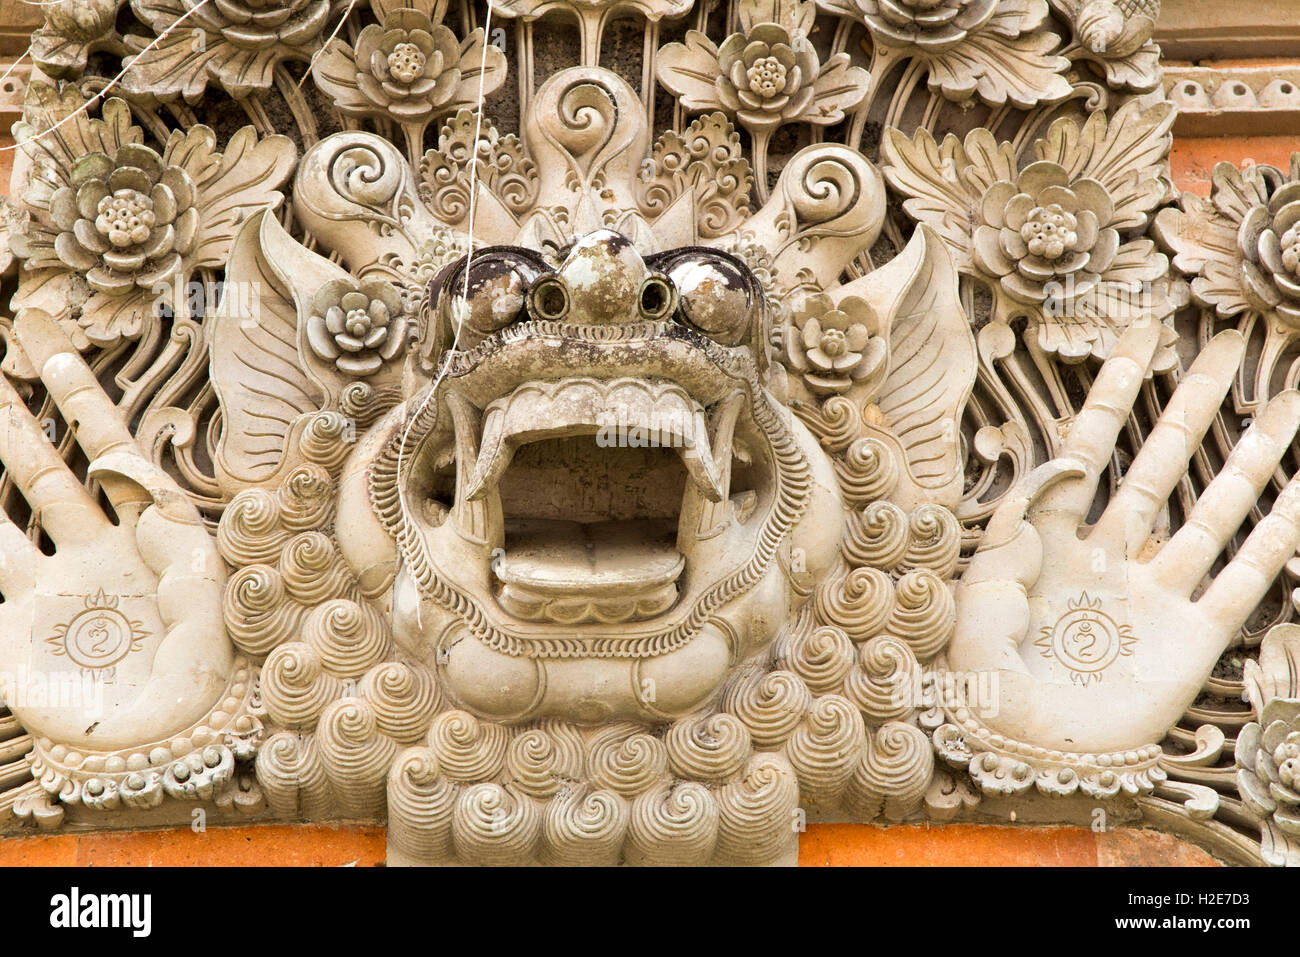 Indonesia, Bali, Payangan, wide mouthed Hindu deity with palms outstretched in local temple - Stock Image